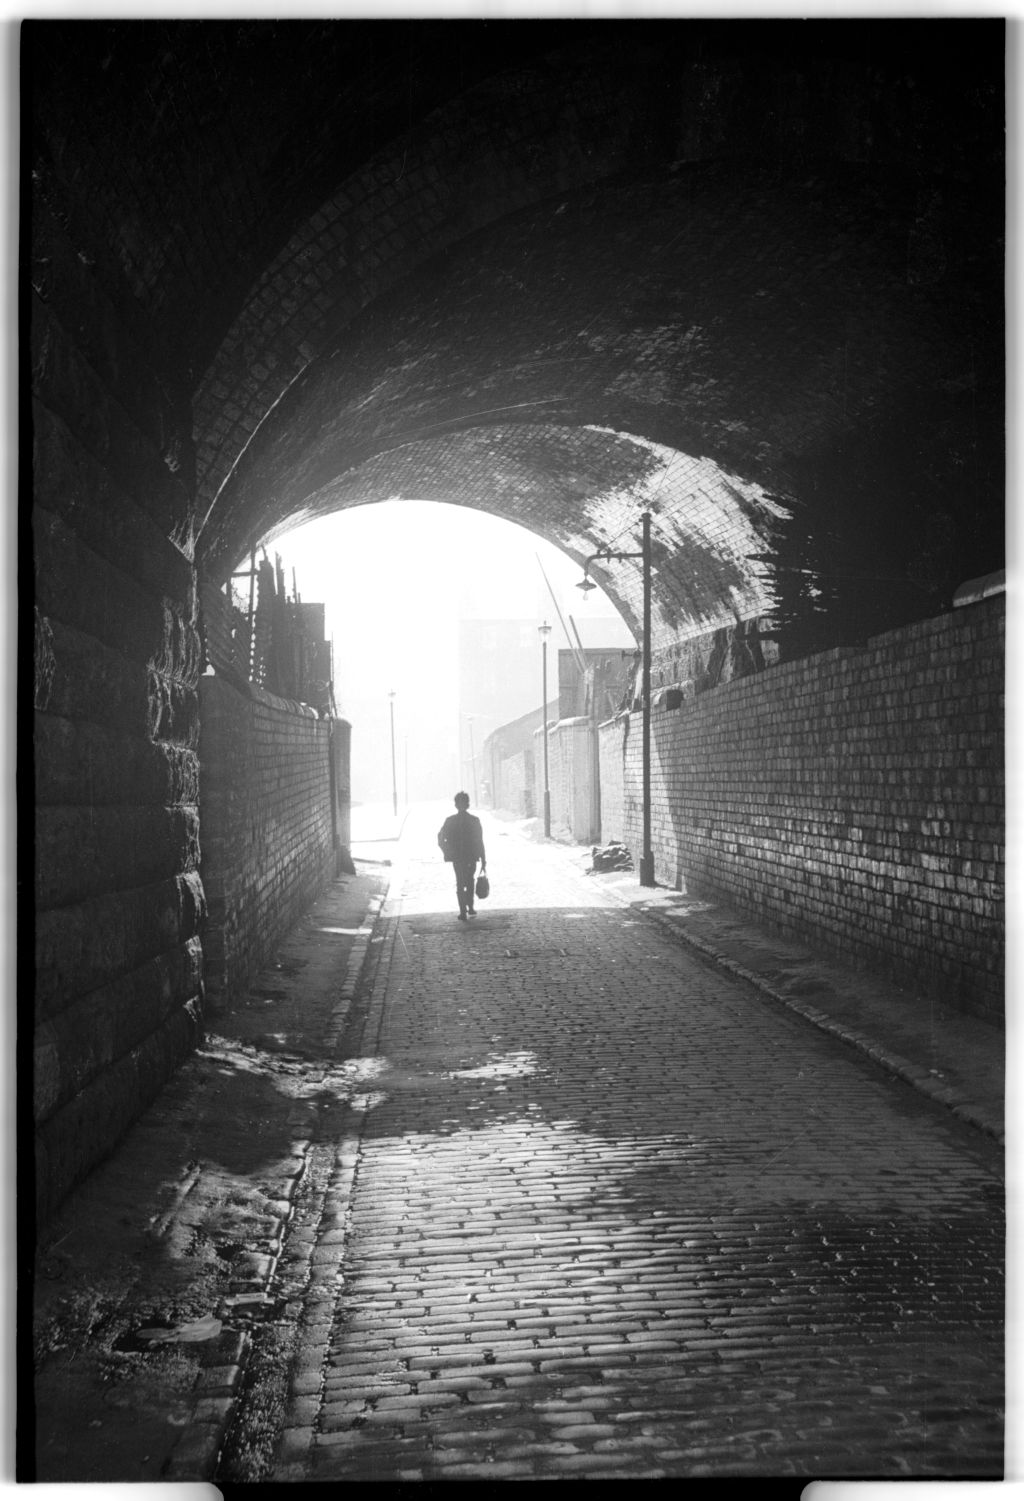 [Cobbled Street Under Railway Bridge]